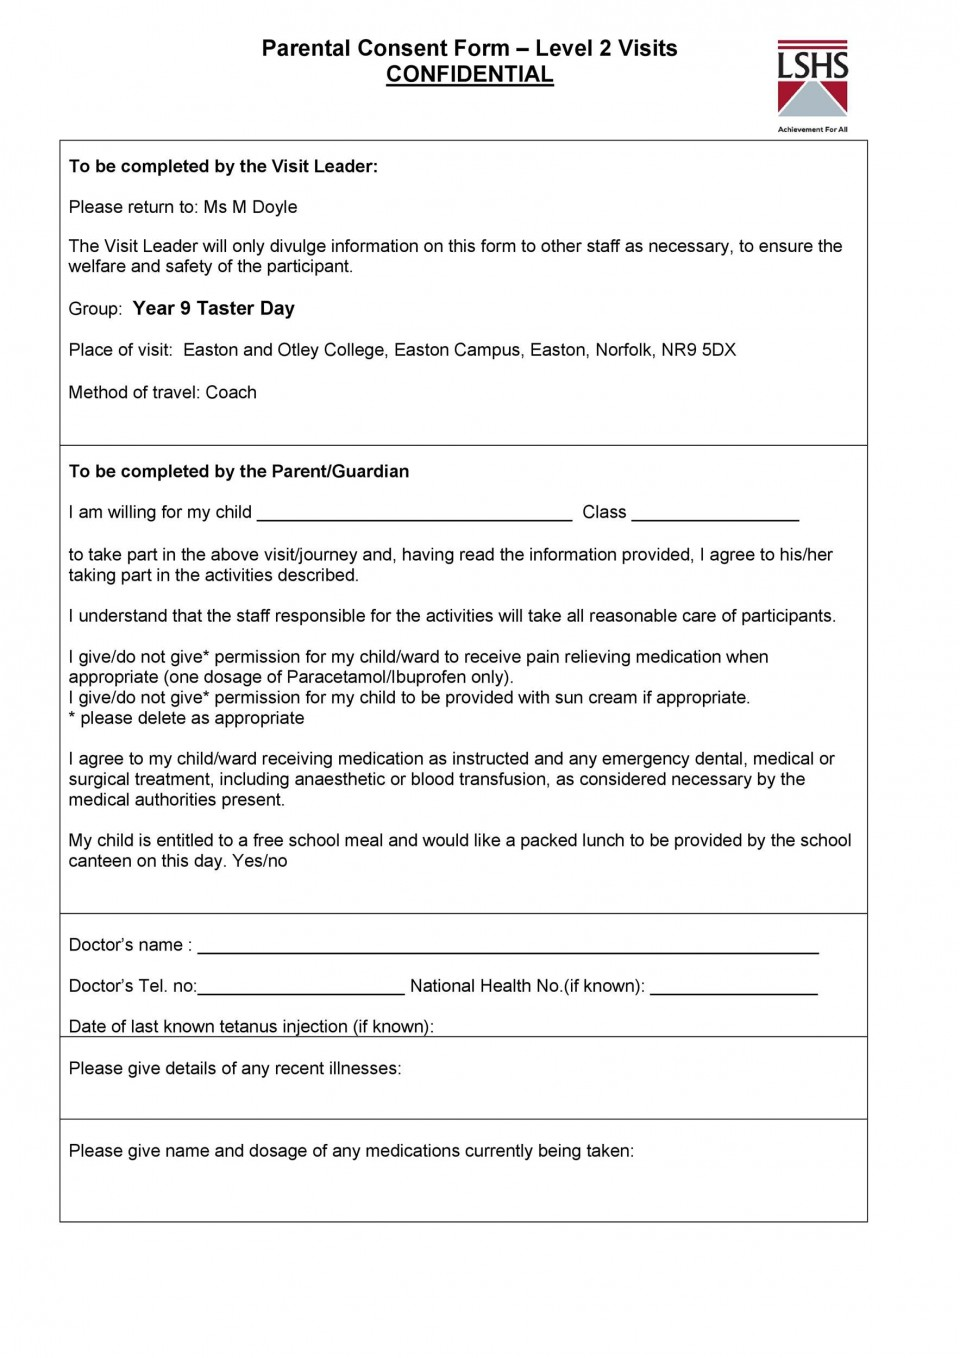 009 Staggering Free Parental Medical Consent Form Template High Definition 960